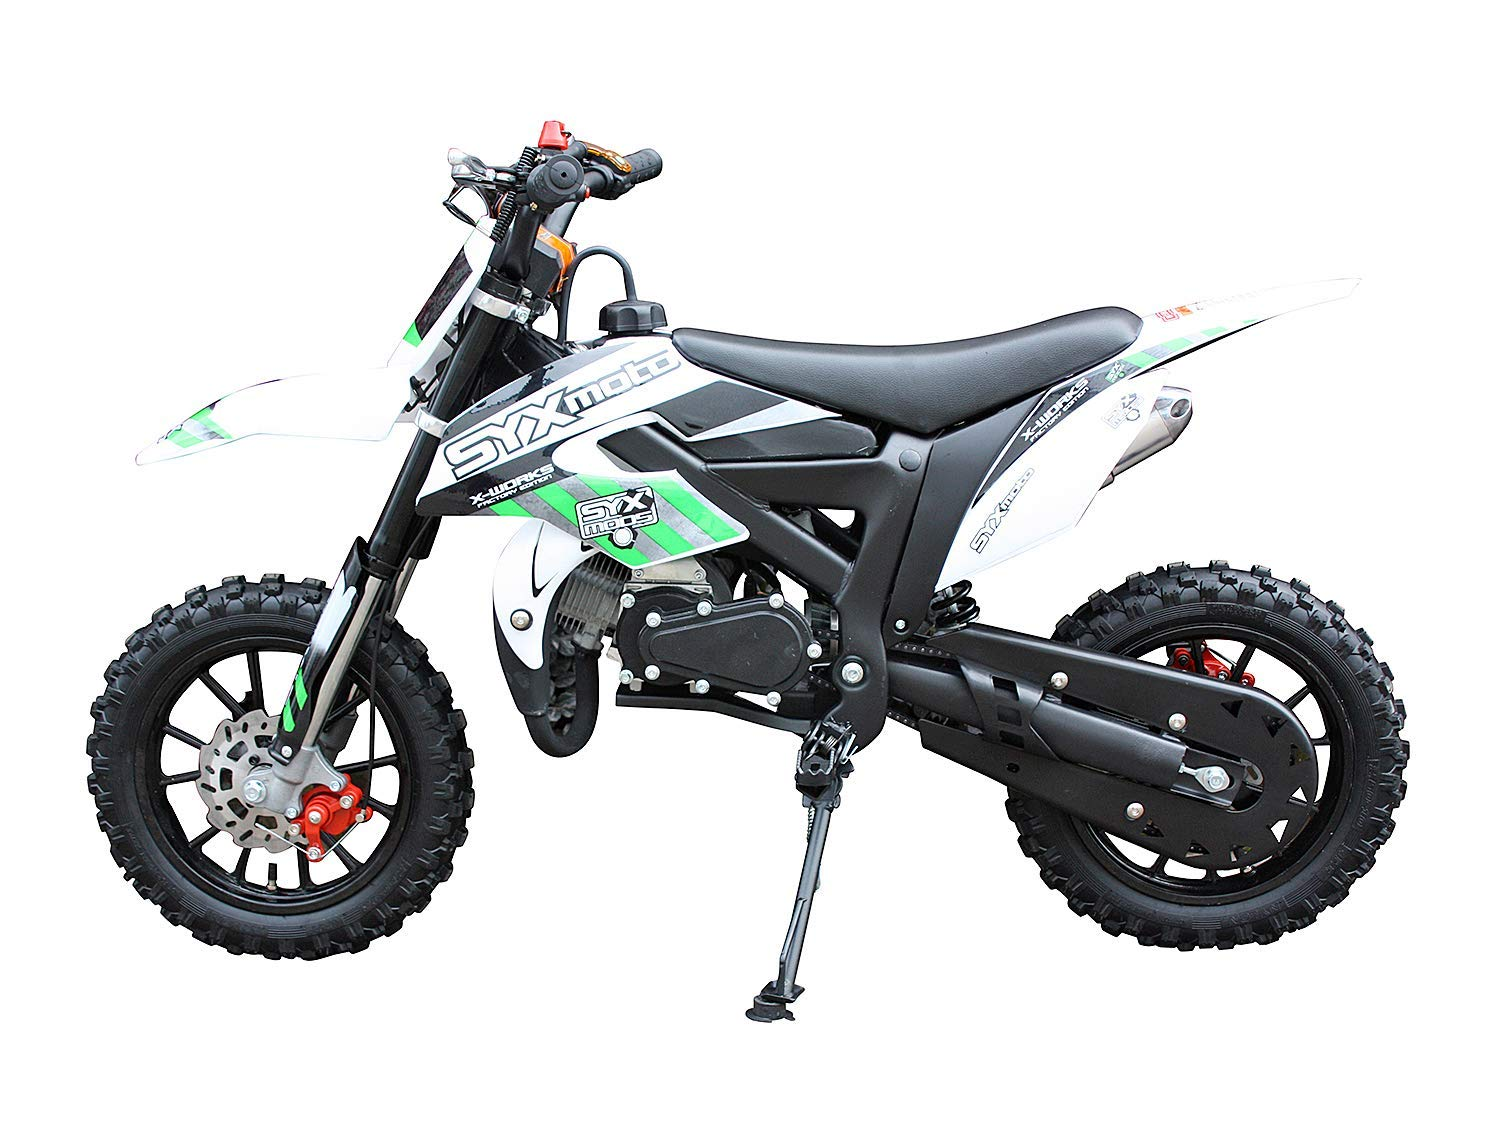 Pit Bike Fully Automatic Transmission,White with Green decal SYX MOTO Kids Dirt Bike Holeshot-X 50cc Gas Power Mini Dirt Bike 20inches Seat Height Dirt Off Road Motorcycle